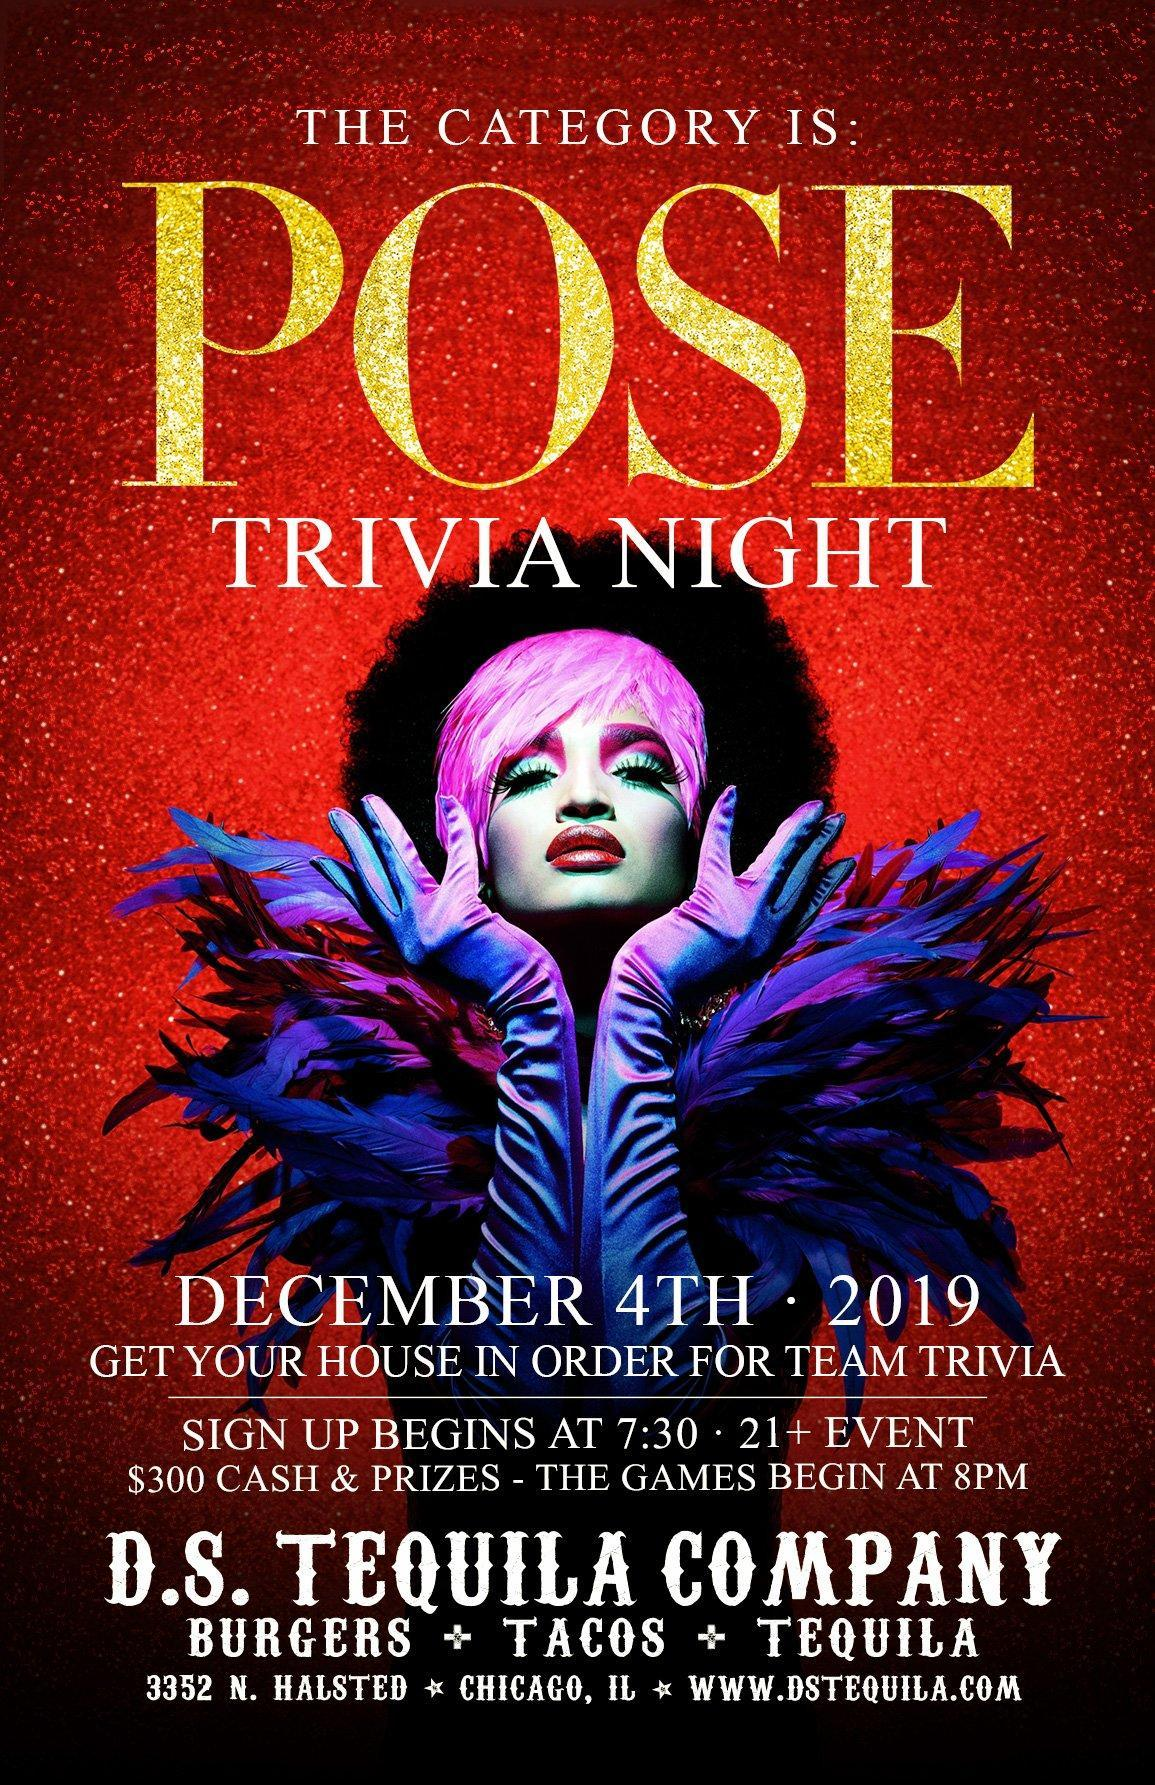 POSE! Trivia Night · Get Your House In Order